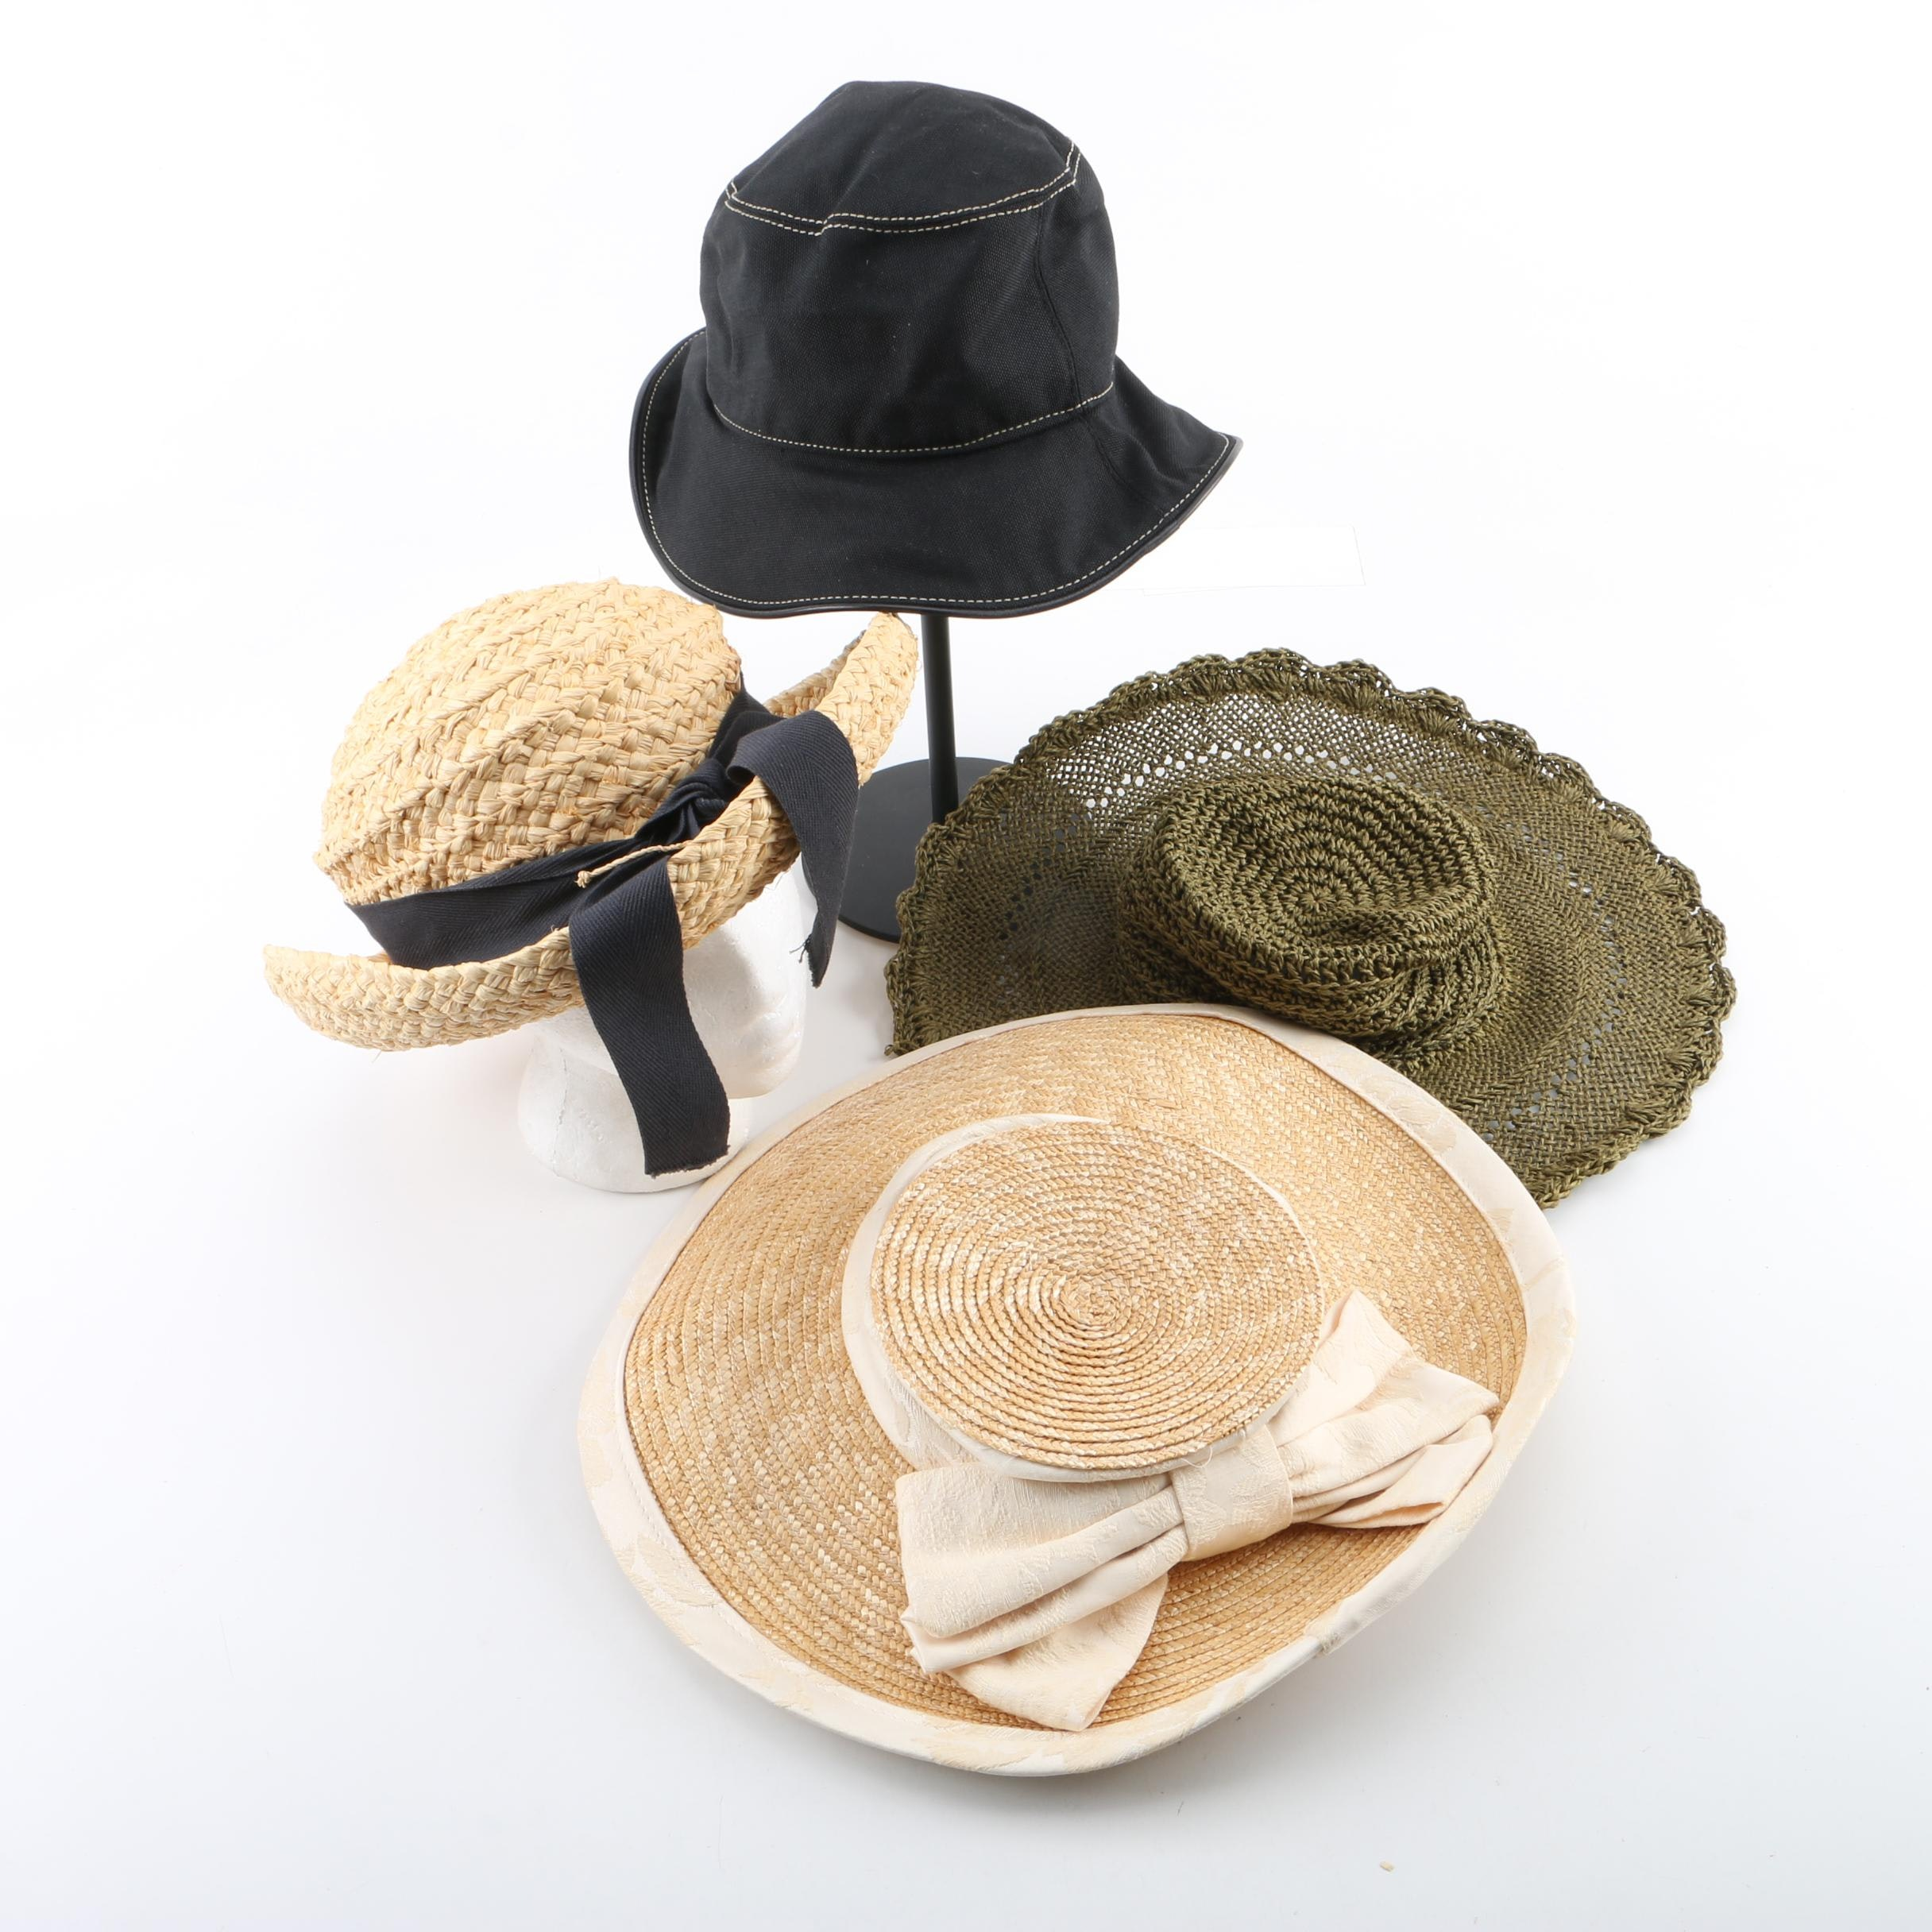 Women's Woven, Bucket and Wide-Brimmed Hats with Eric Javits and Helen Kaminski